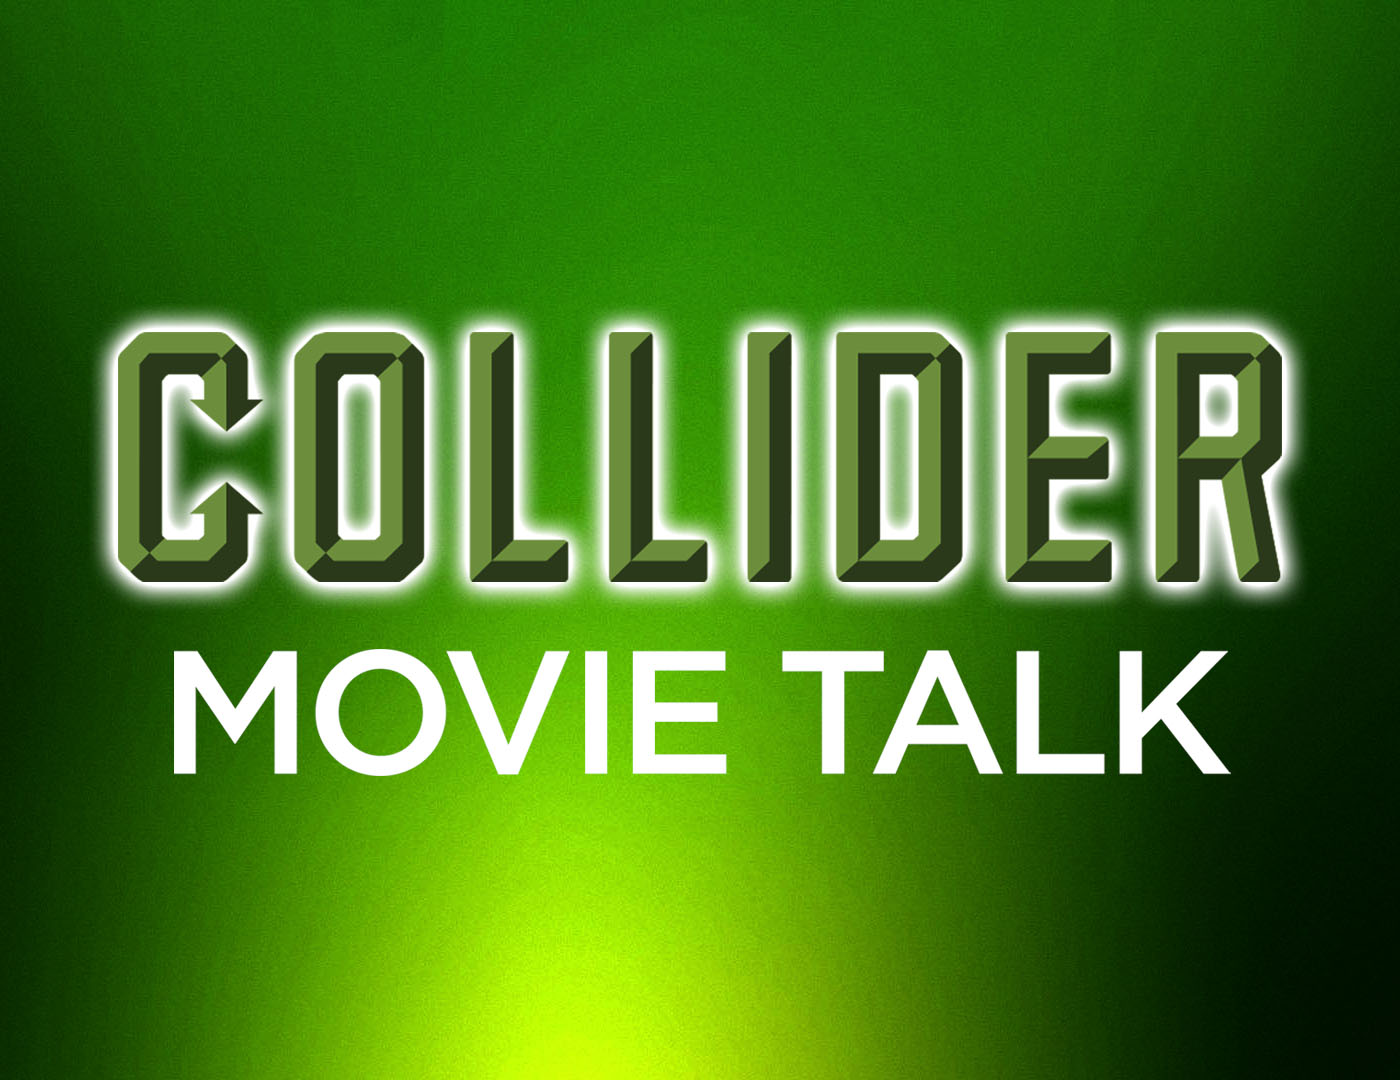 Collider Movie Talk - Batman V Superman Deleted Scene Revealed